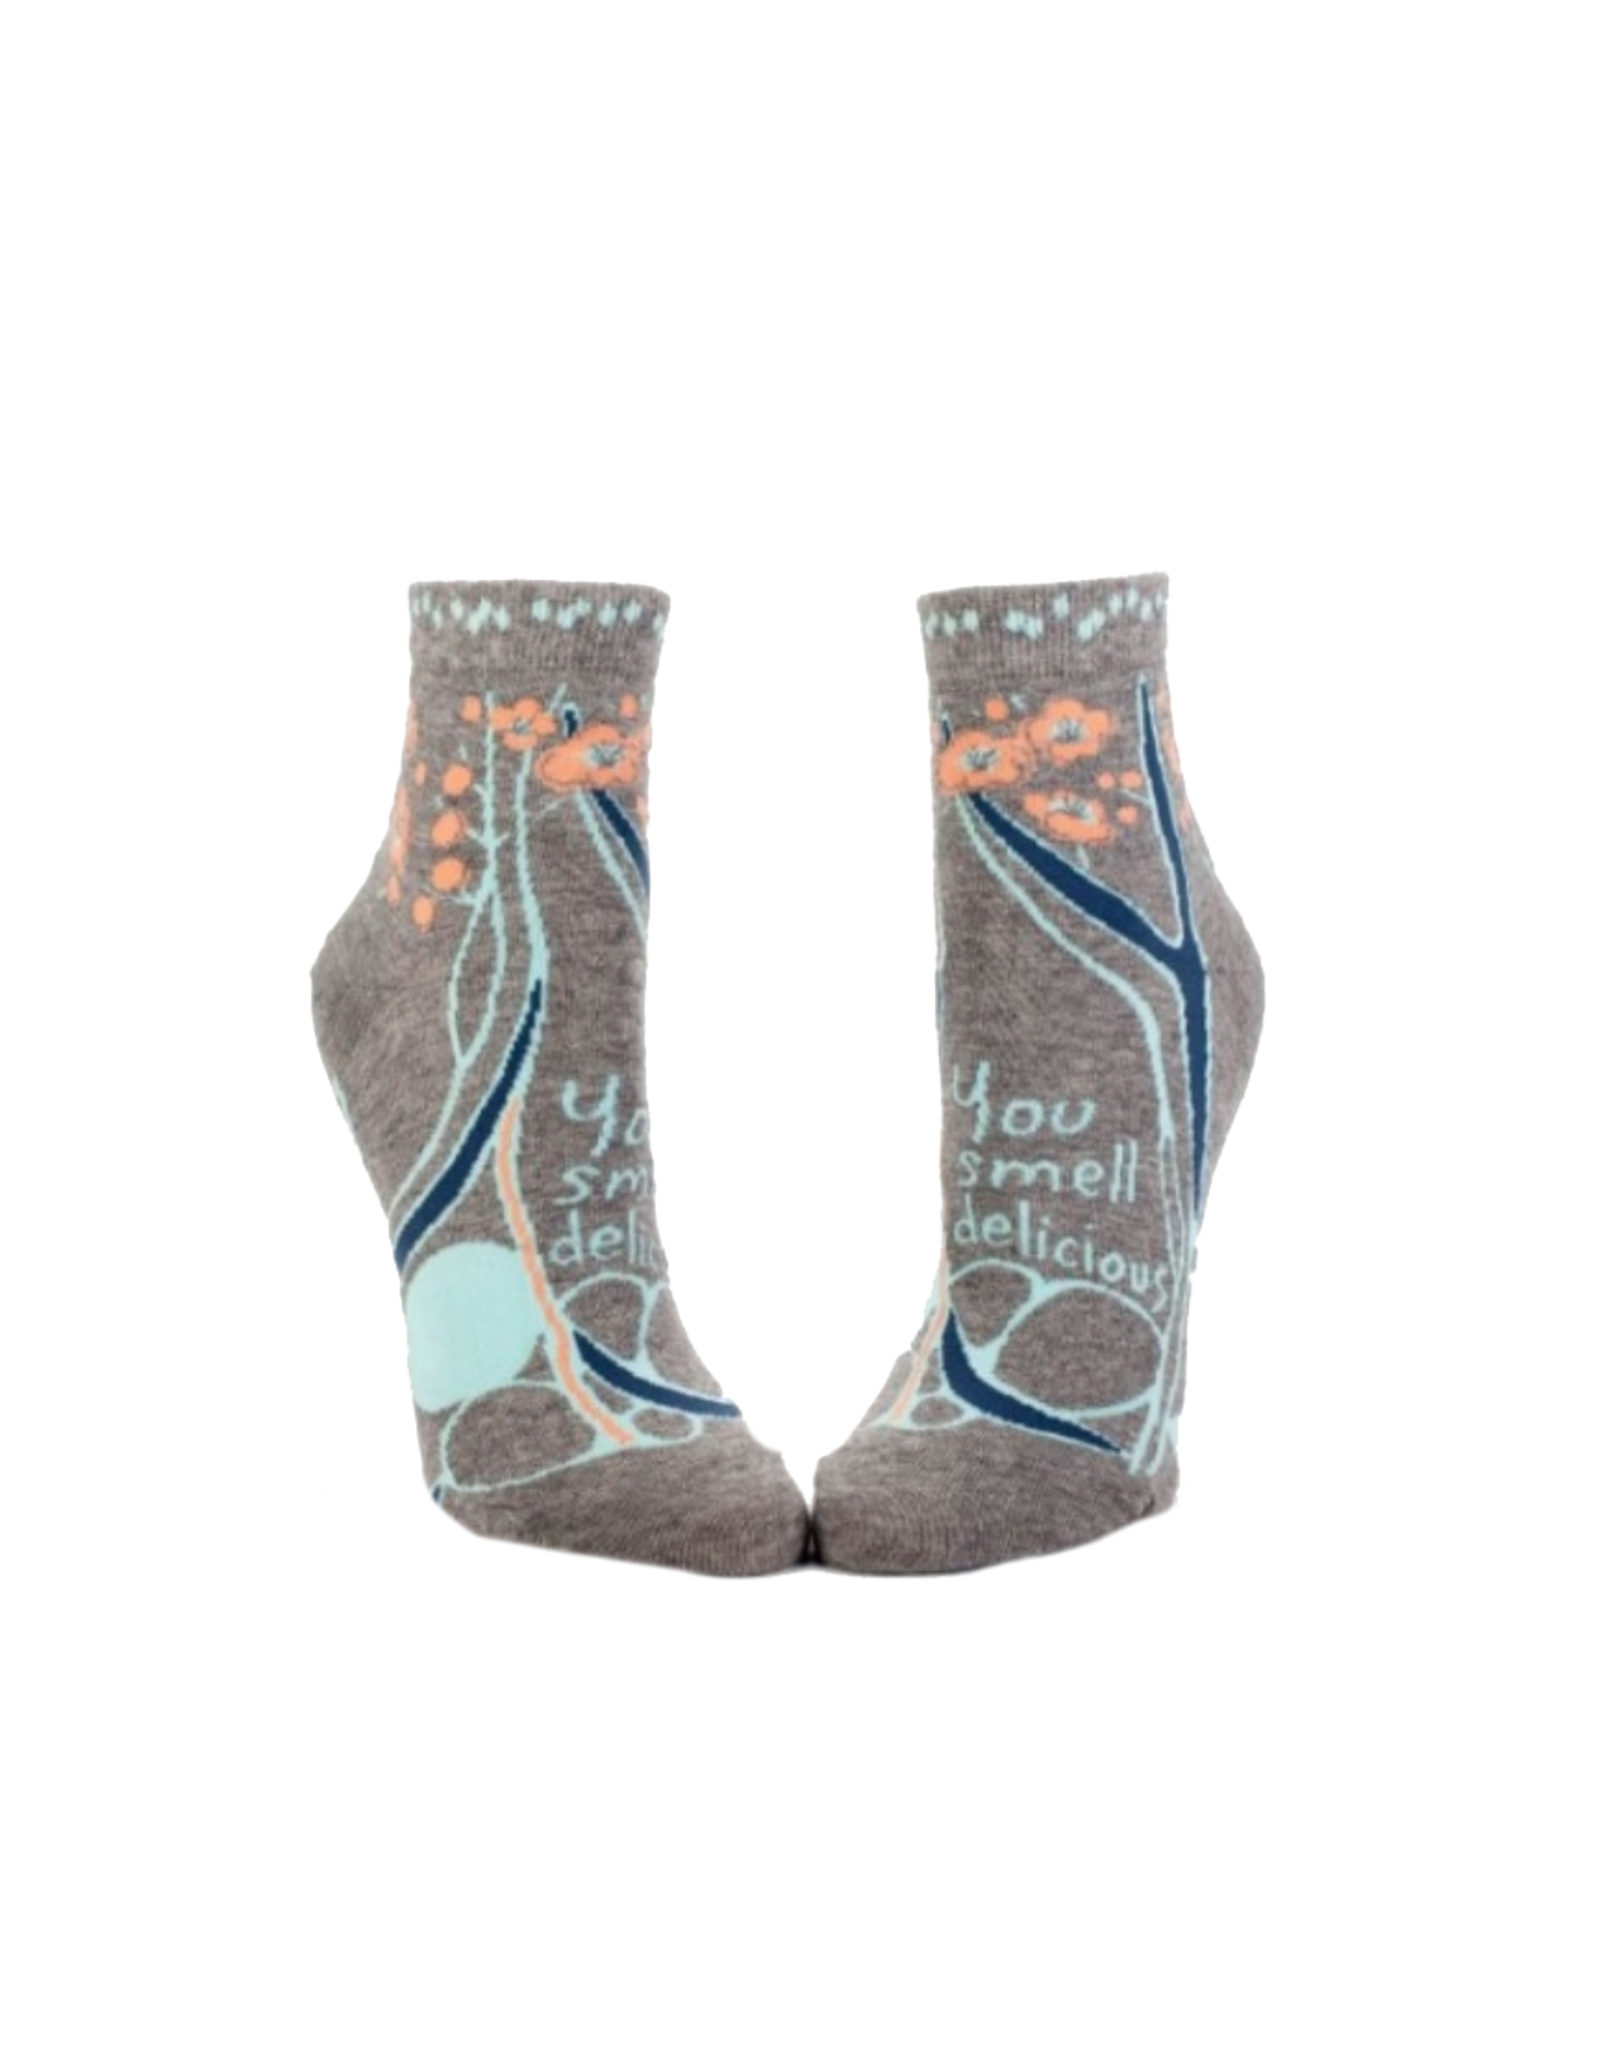 You Smell Delicious Women's Ankle Socks